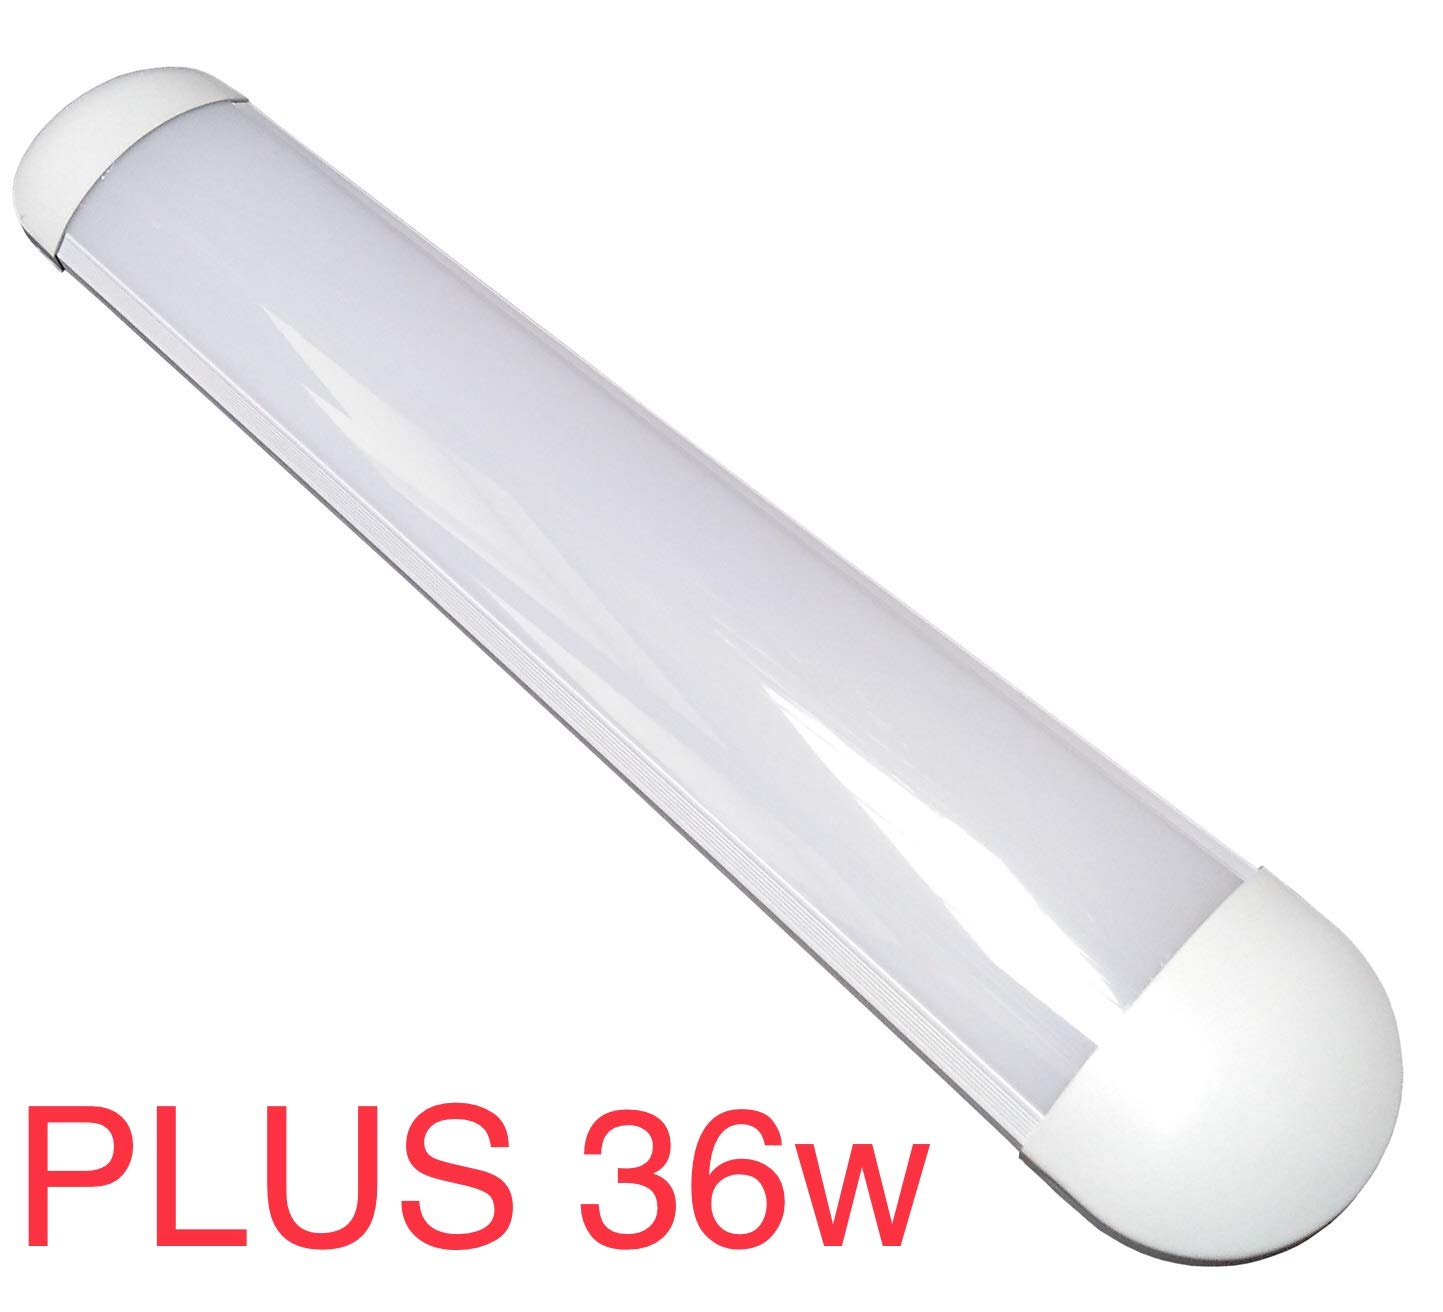 (LA) Pantalla 60cm PLUS. DOBLE POTENCIA! 36w, color blanco neutro 4500K